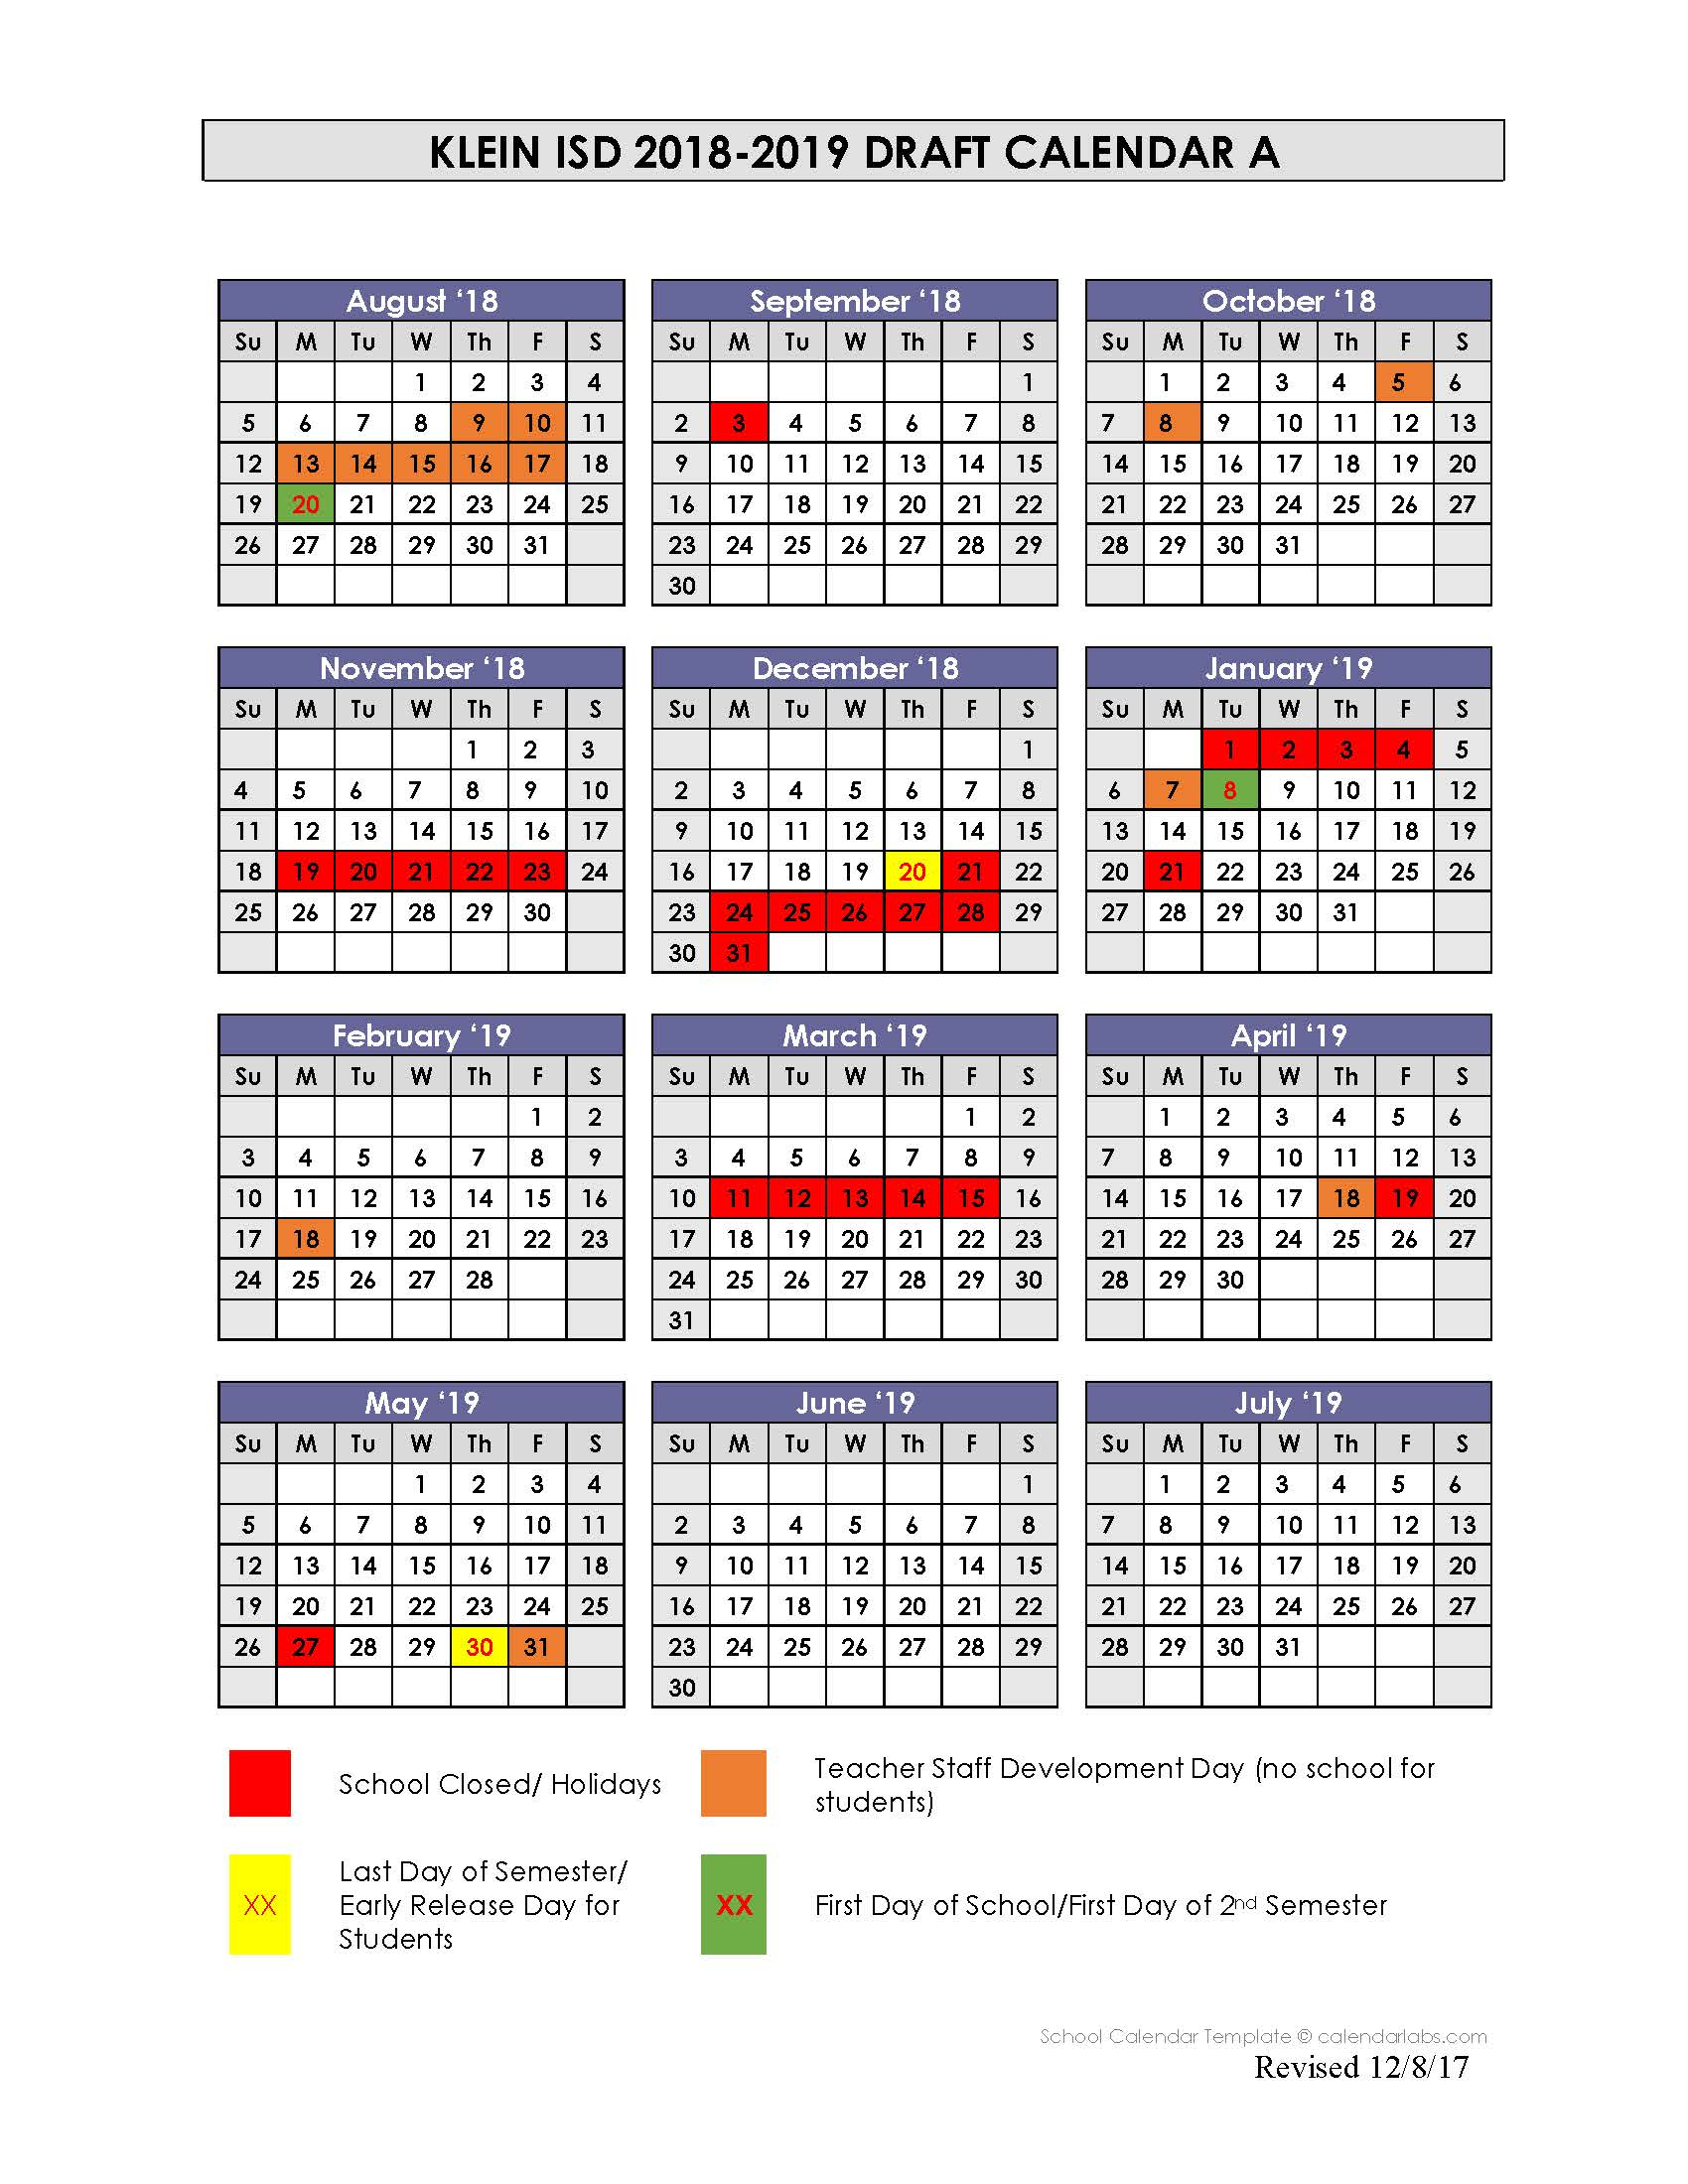 District Calendar Options Presented For 2018-19 School Year intended for Kisd Payroll Calendar